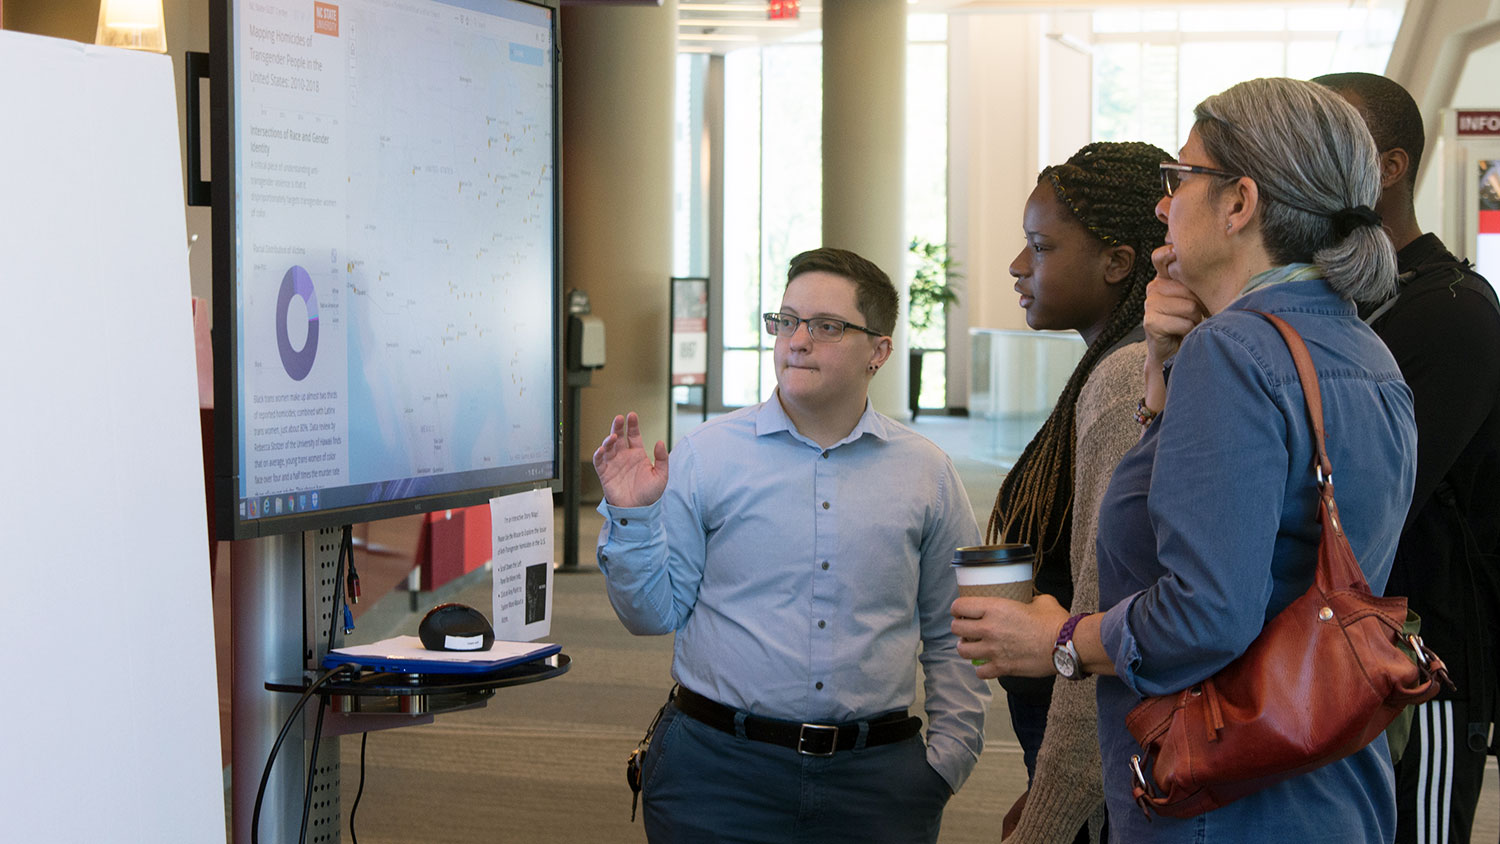 Gender and Equity Research Symposium poster presentation